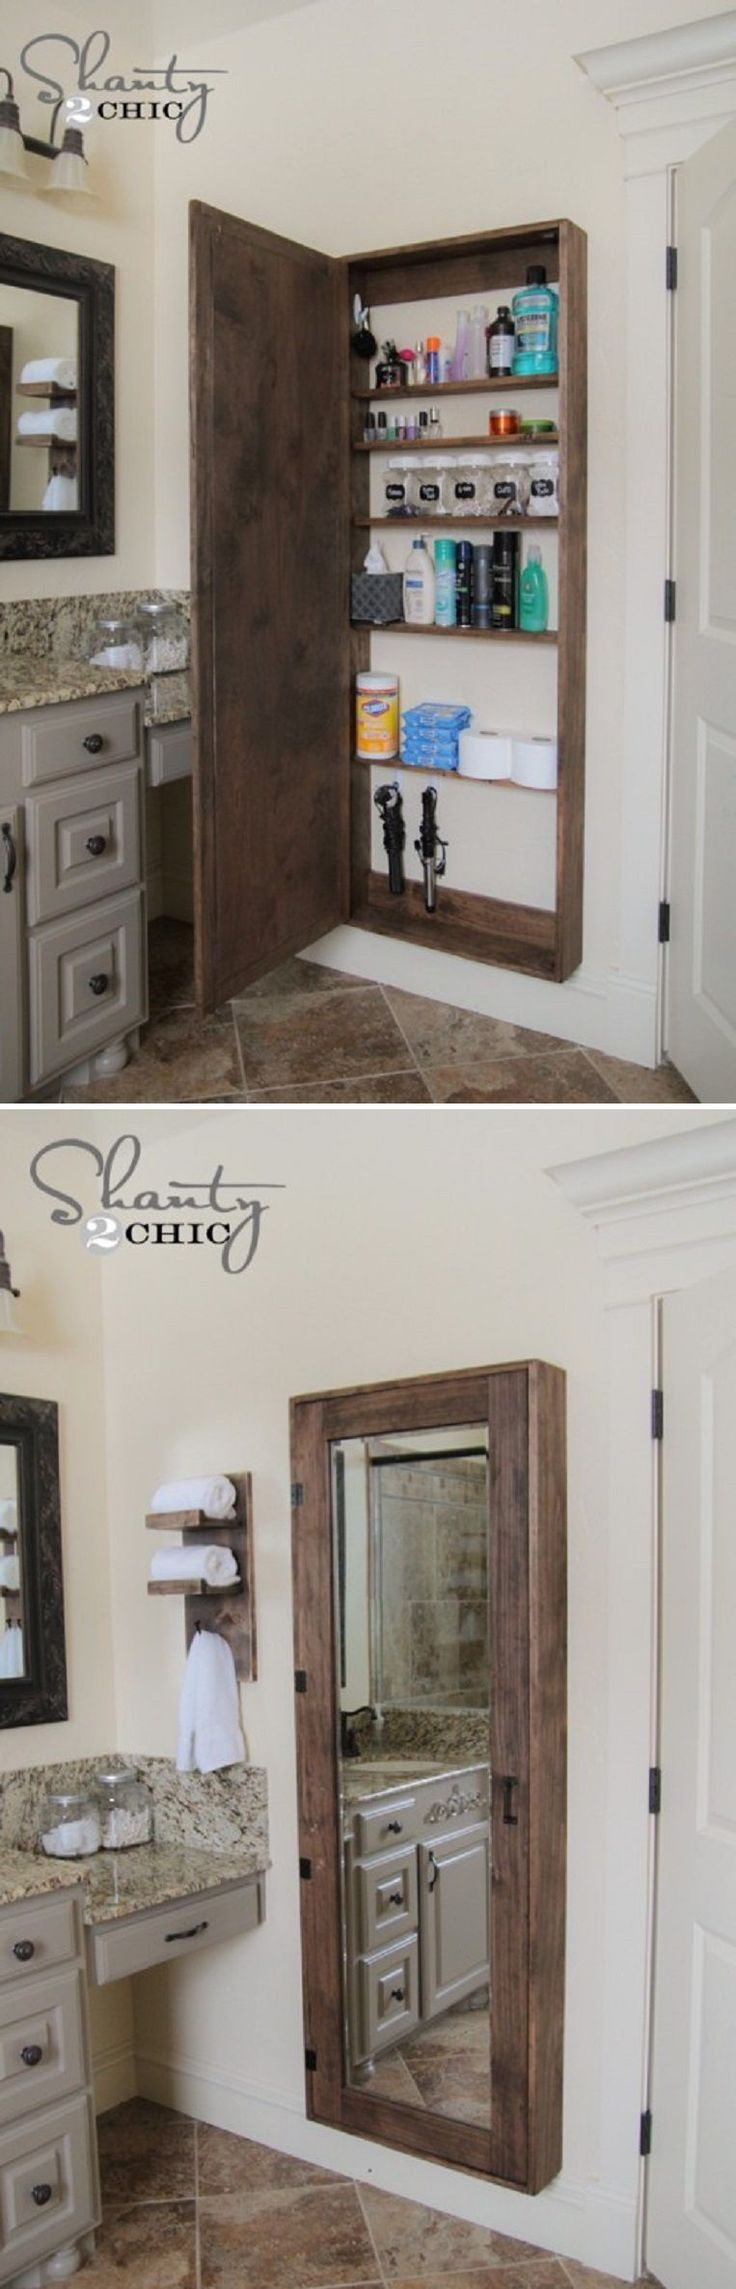 Bathroom wall cabinets ideas - 20 Clever Bathroom Storage Ideas